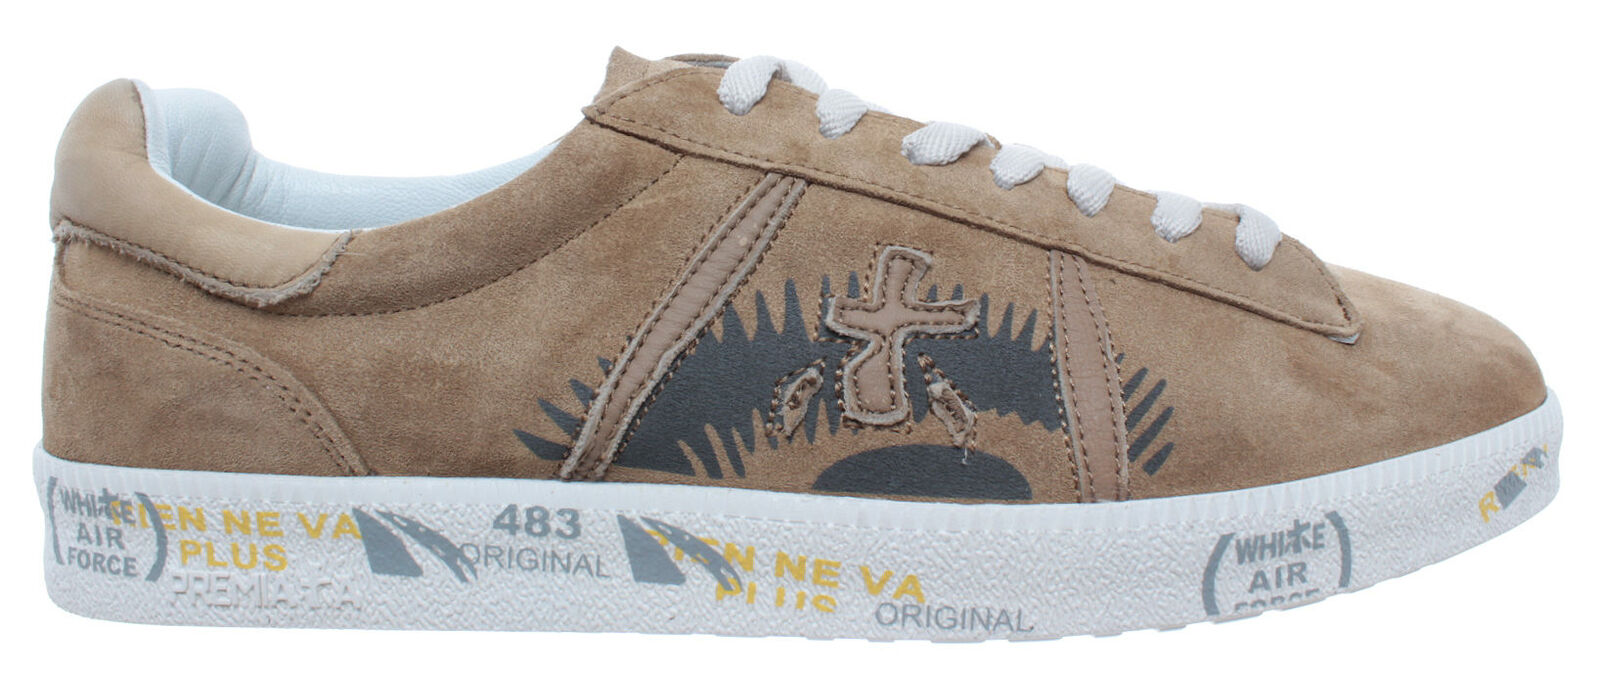 Men's shoes Sneakers PREMIATA Andy 3861 Suede Beige New